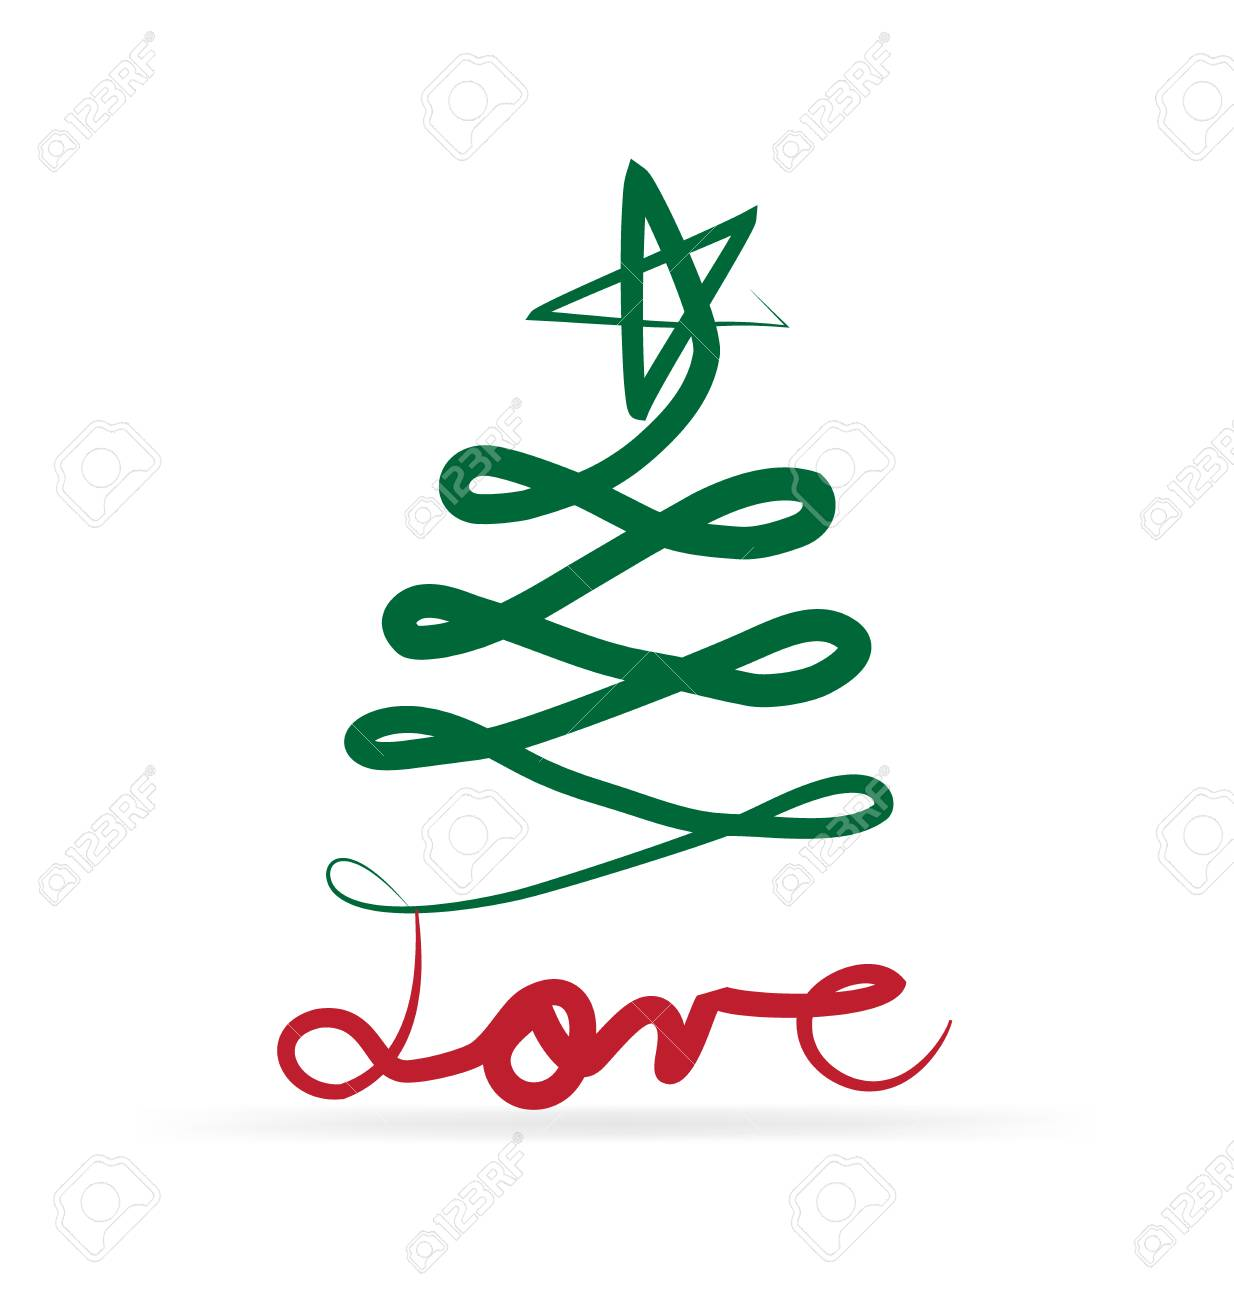 Christmas Tree And Love Text Royalty Free Cliparts Vectors And Stock Illustration Image 49922585